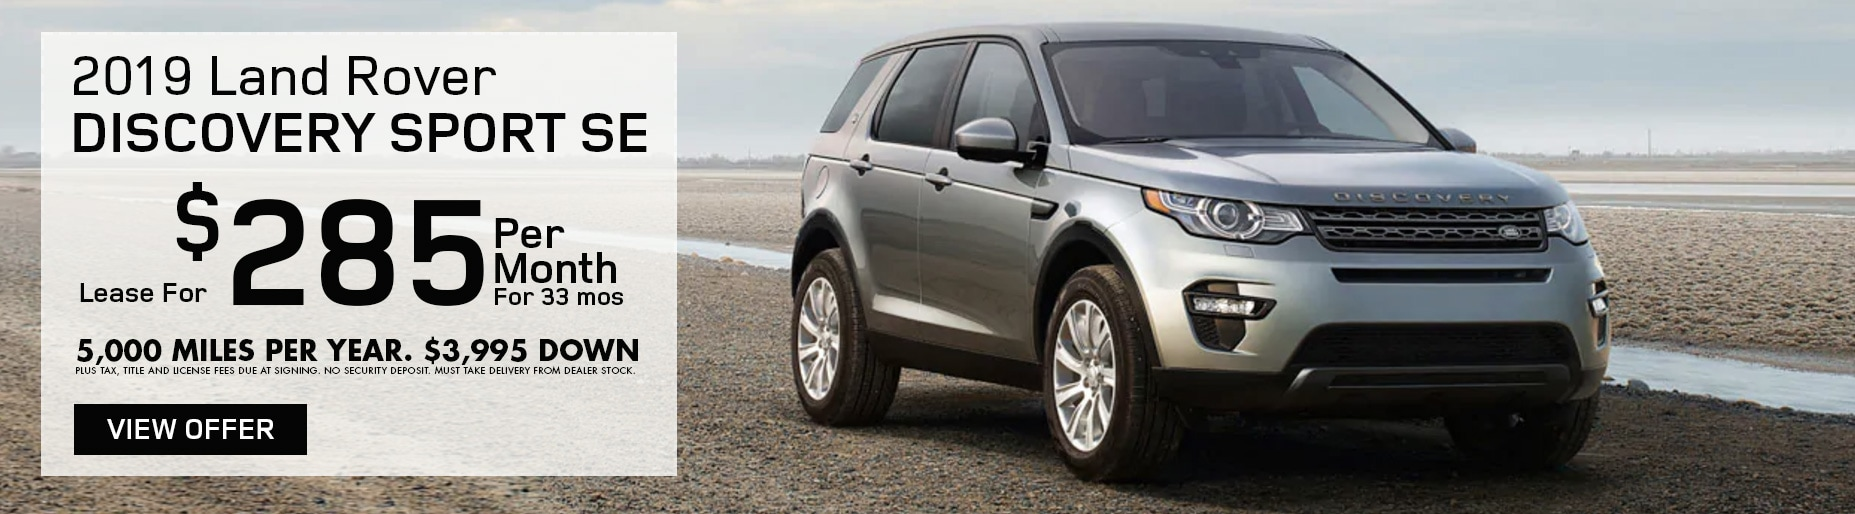 Range Rover Dealers In Ma >> Boston Land Rover Dealer Serving Newton Quincy Brookline Land